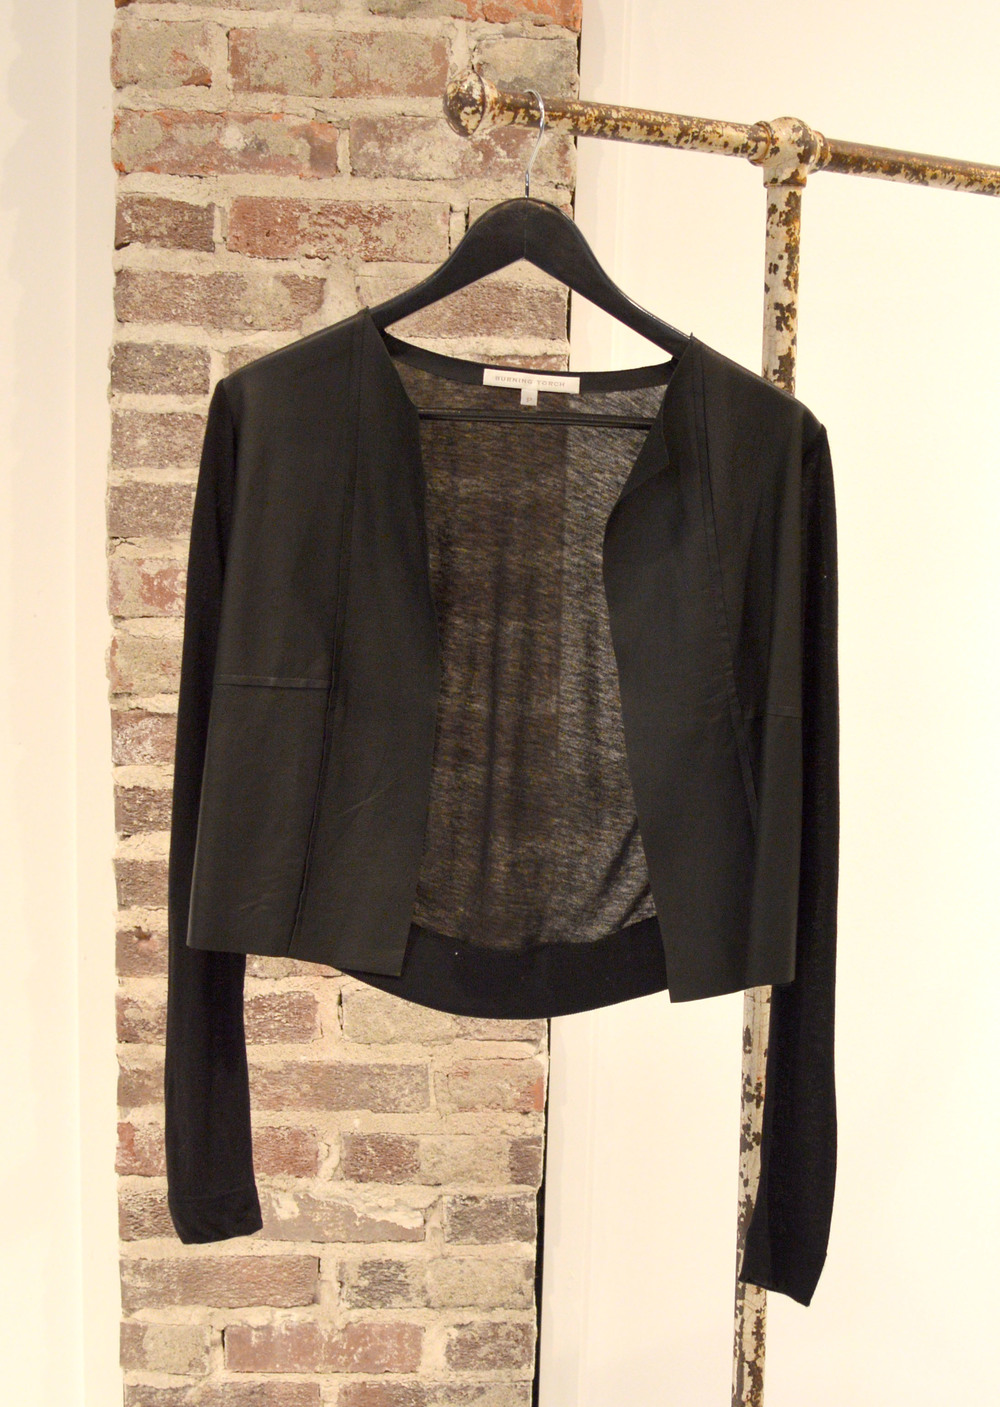 Throw this leather front jacket/cardigan over anything to add a classy, yet edgy look to your ensemble! $355